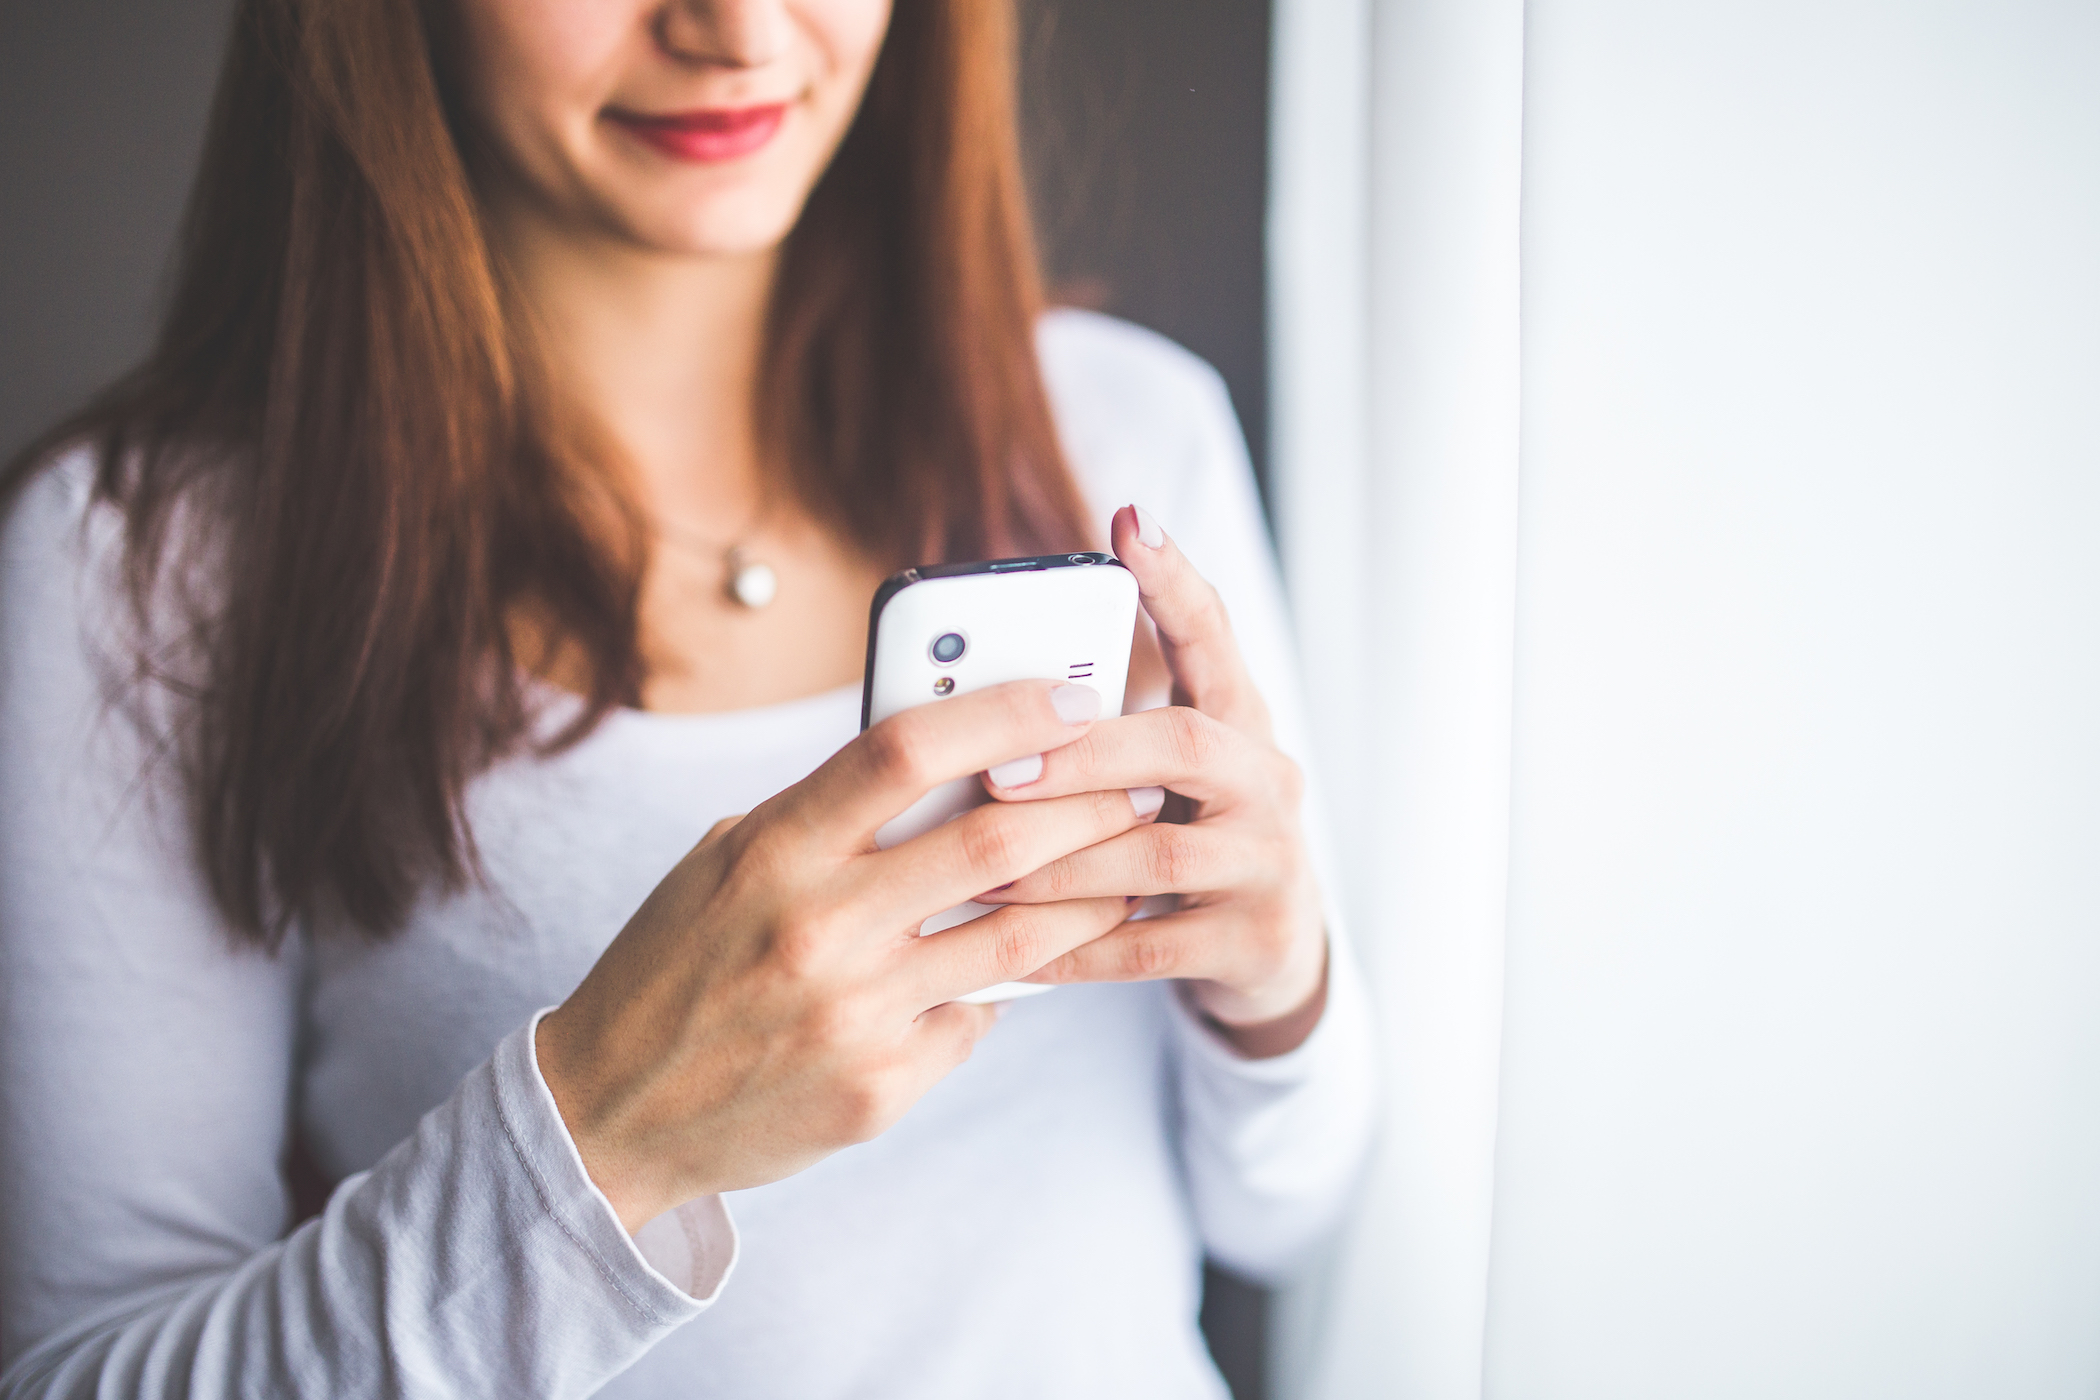 5 Apps I Can't Live Without